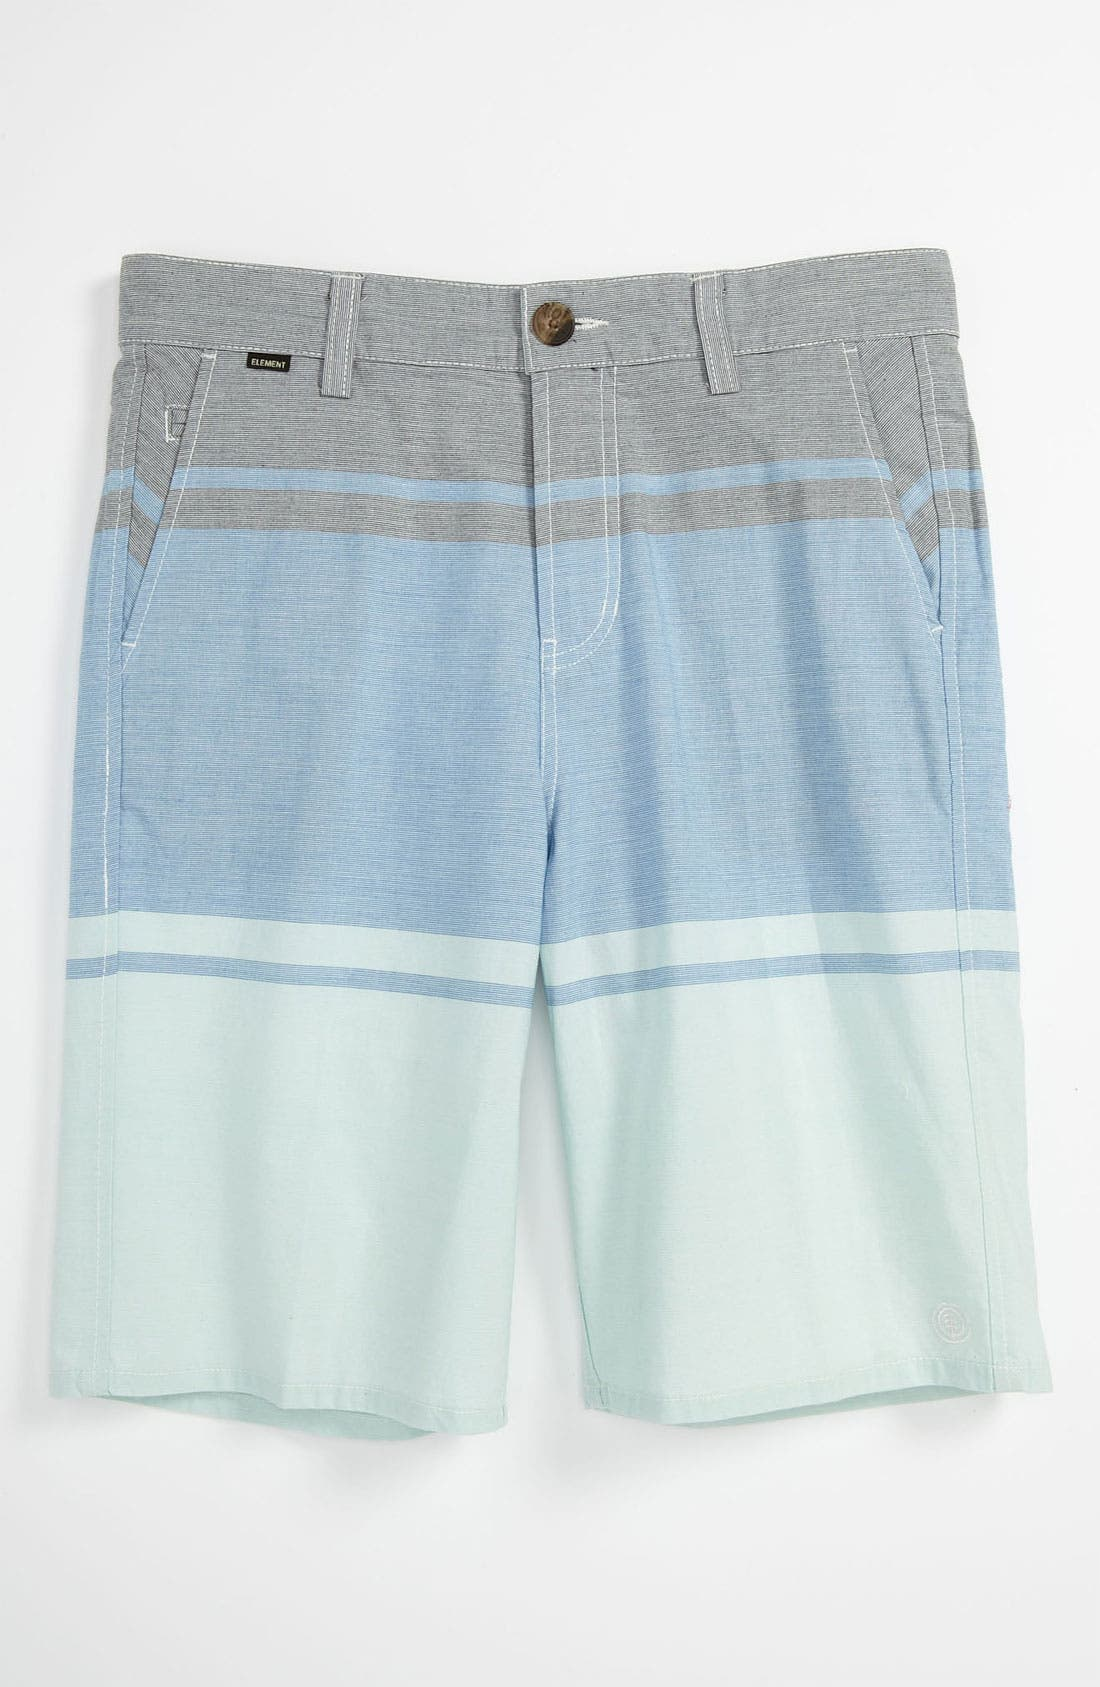 Alternate Image 1 Selected - Element 'Alex' Yarn Dyed Shorts (Big Boys)